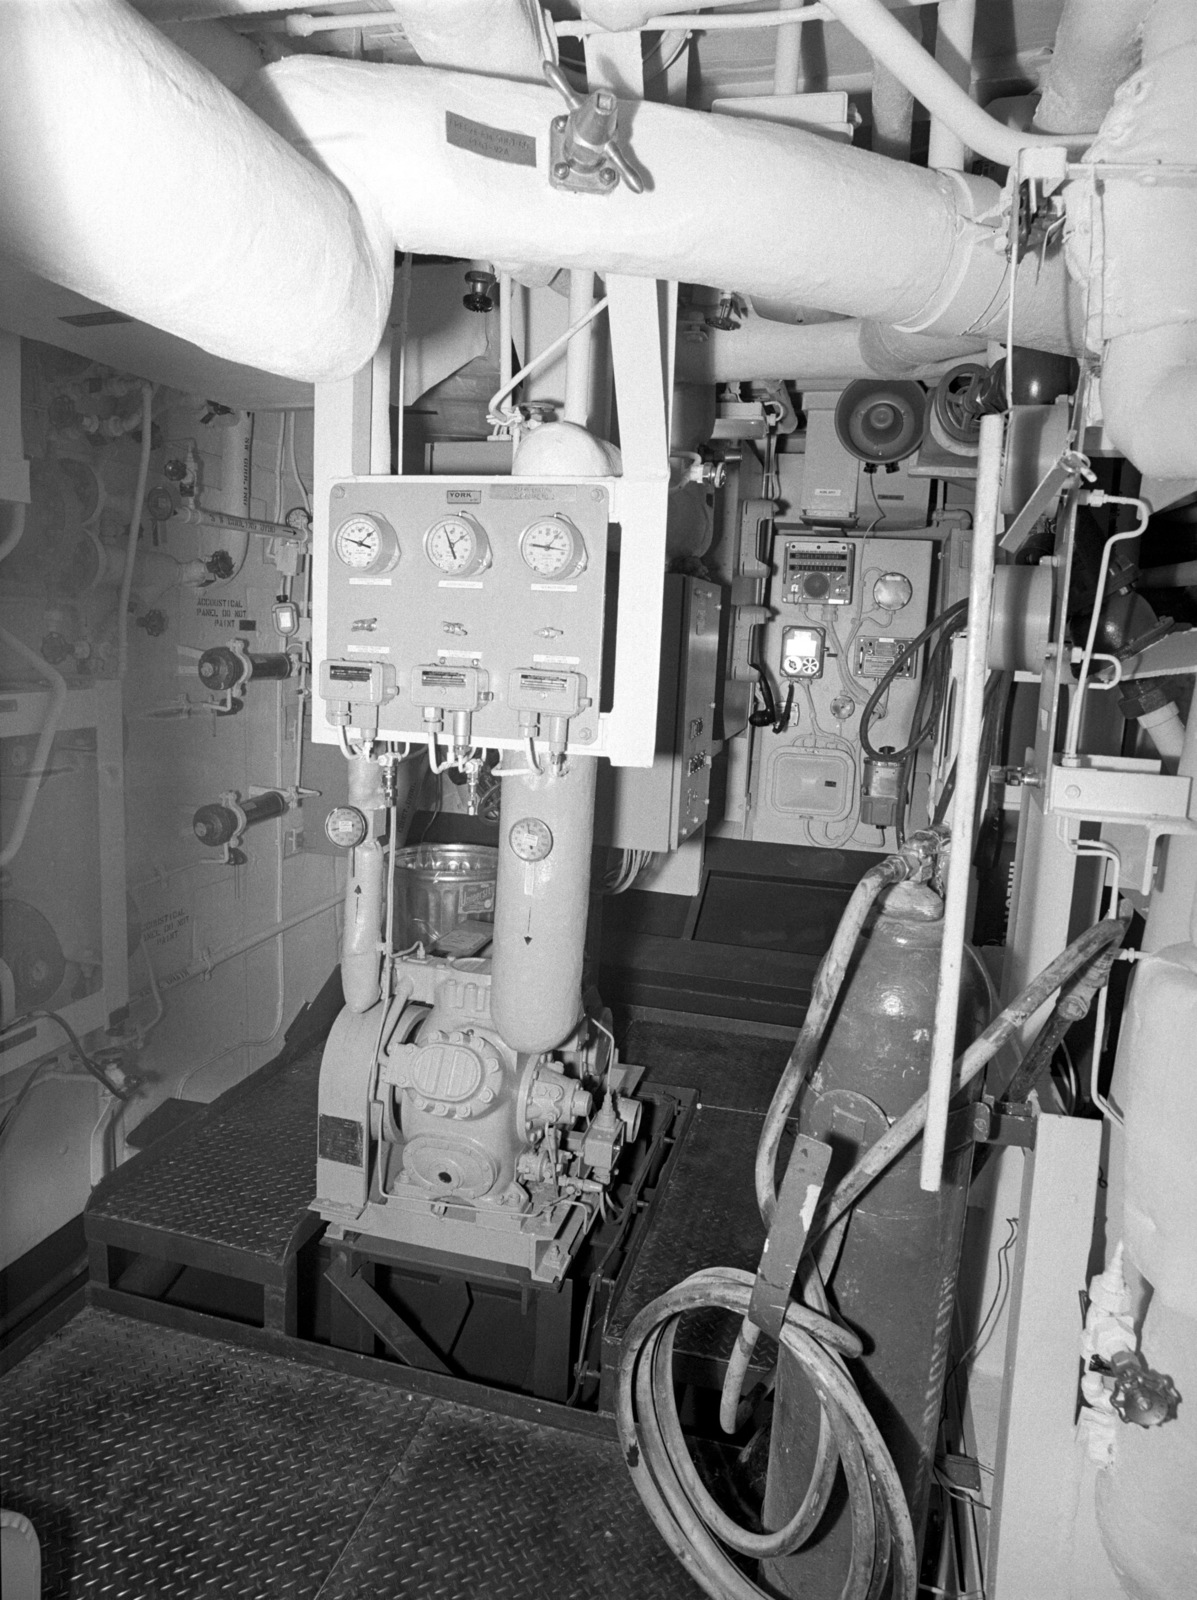 Auxiliary machinery room No. 1 aboard the Oliver Hazard Perry class guided missile frigate USS JOHN L. HALL (FFG 32) at 90 percent completion